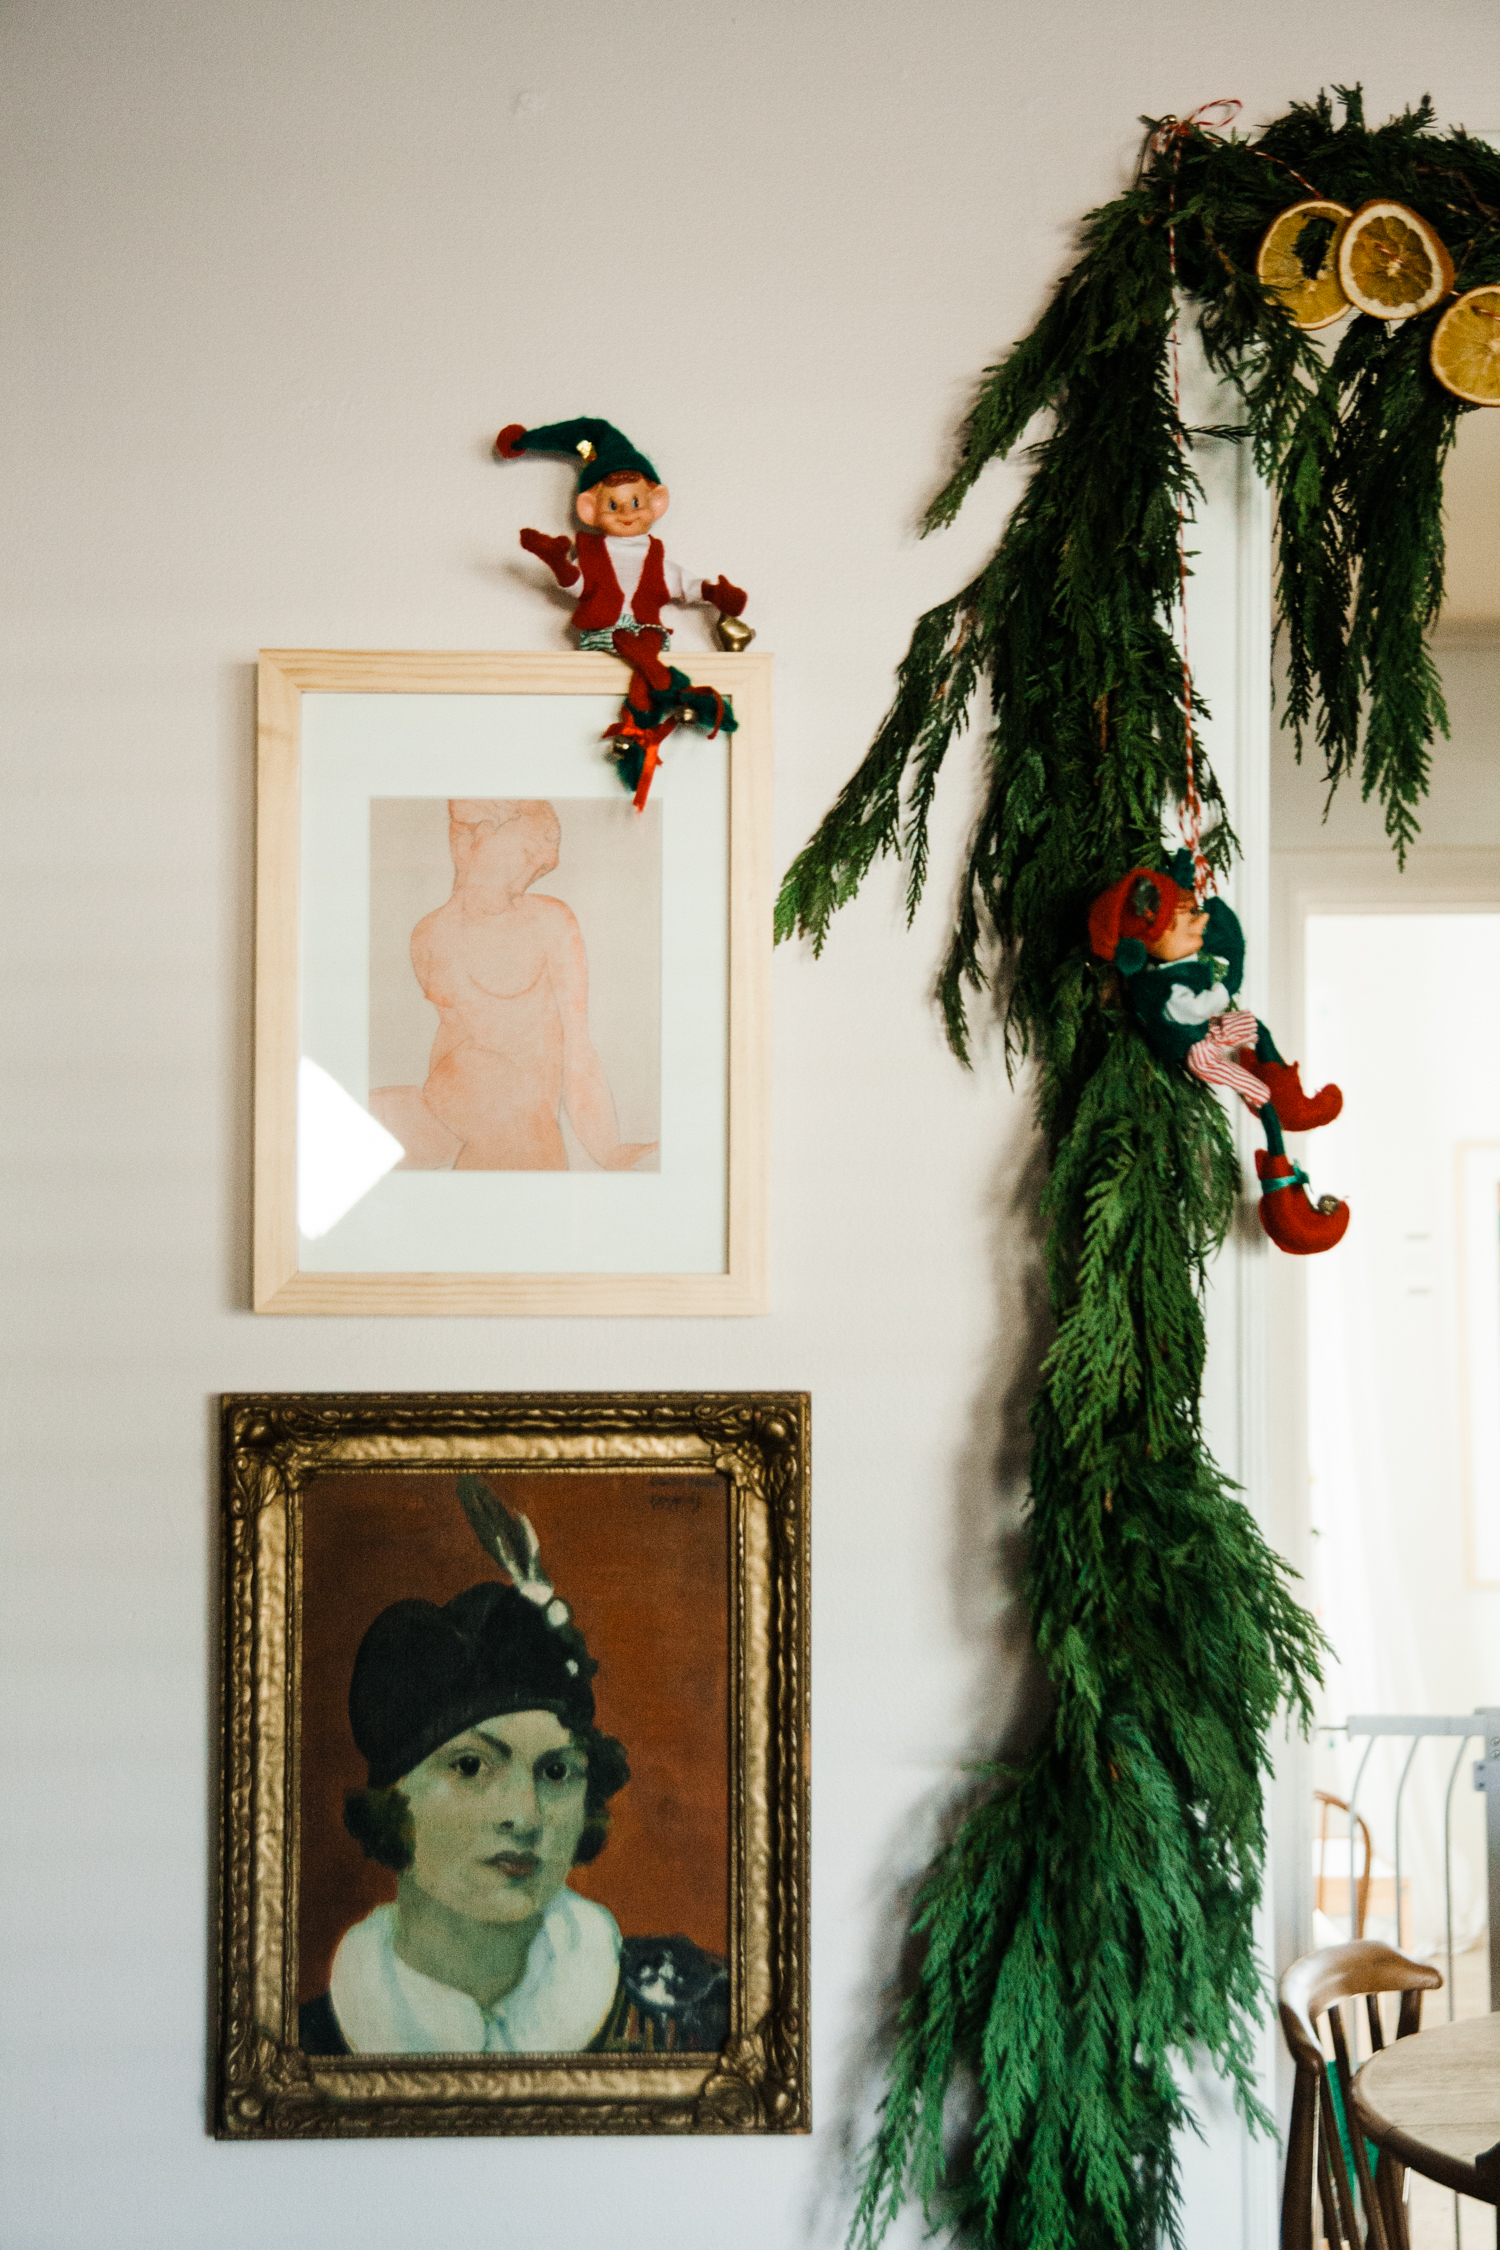 daly holiday home tour-13.jpg